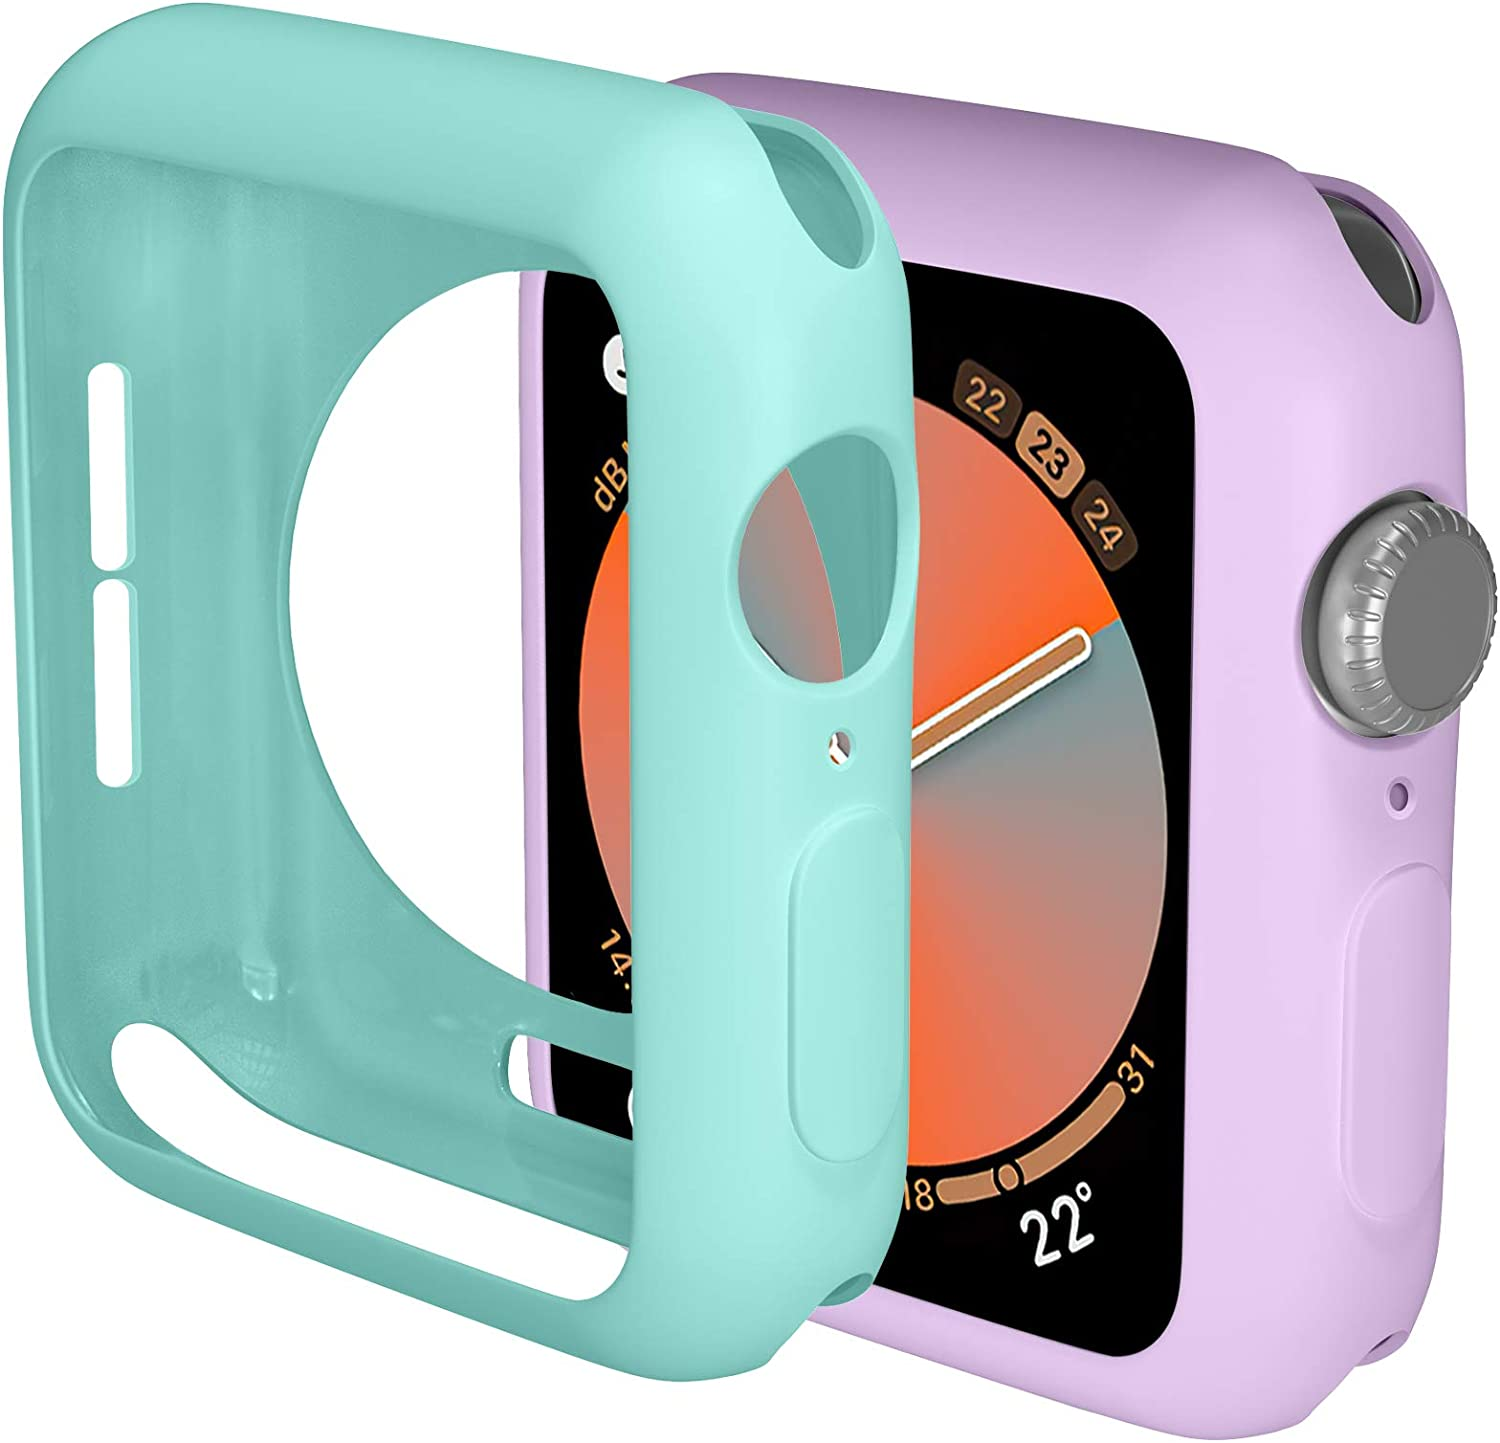 ZAROTO 38mm Case Compatible for Apple Watch SE Protector, 2pack Soft Bumper Protective Case for iwatch Cover 38mm Series 3 2 1 Flexible TPU Thin Lightweight Women Girls (Purple/Light Blue)